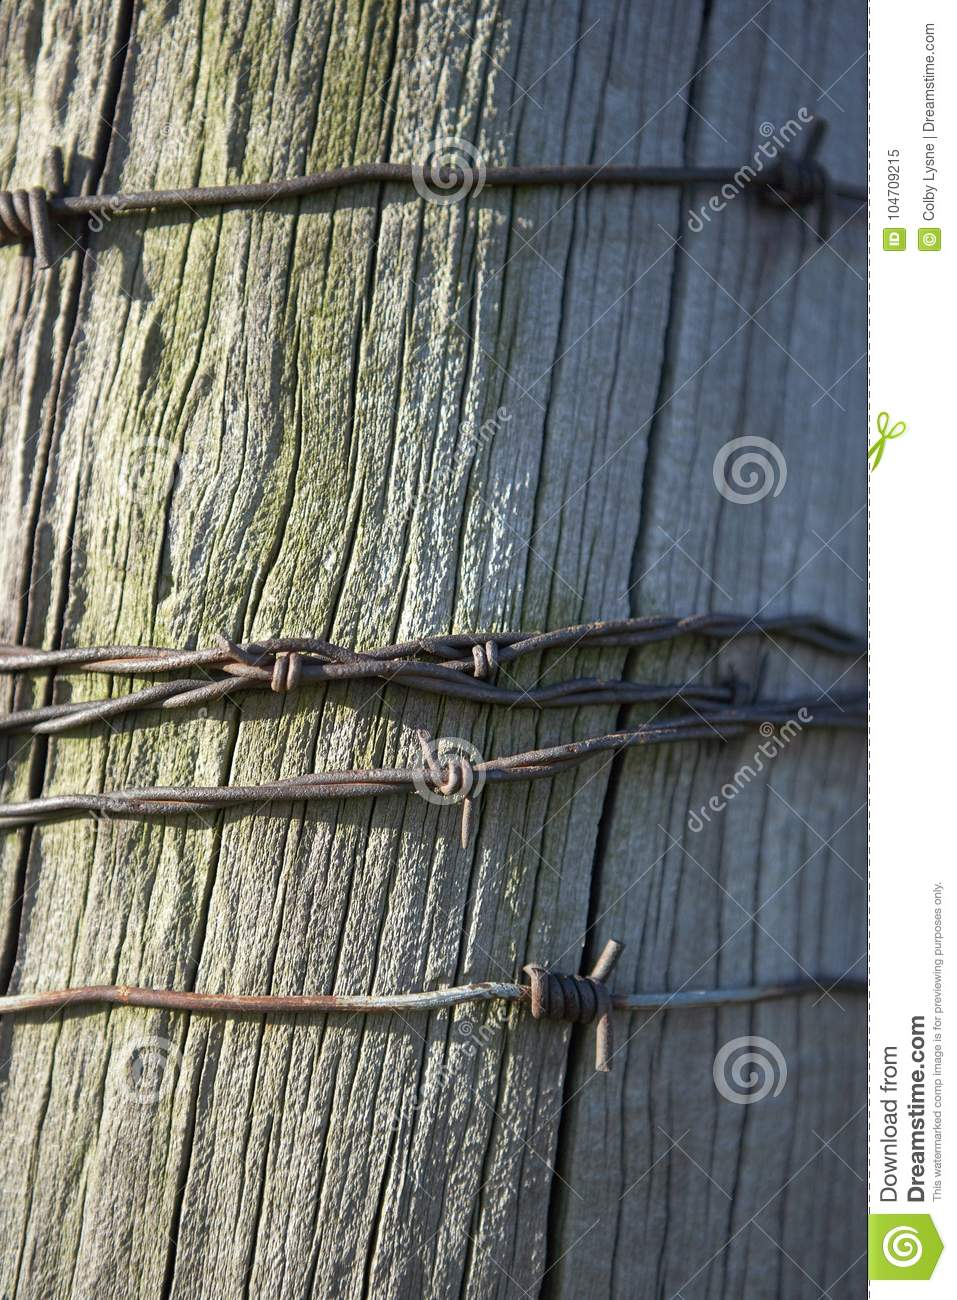 Wooden pole with barbed wire in close up view